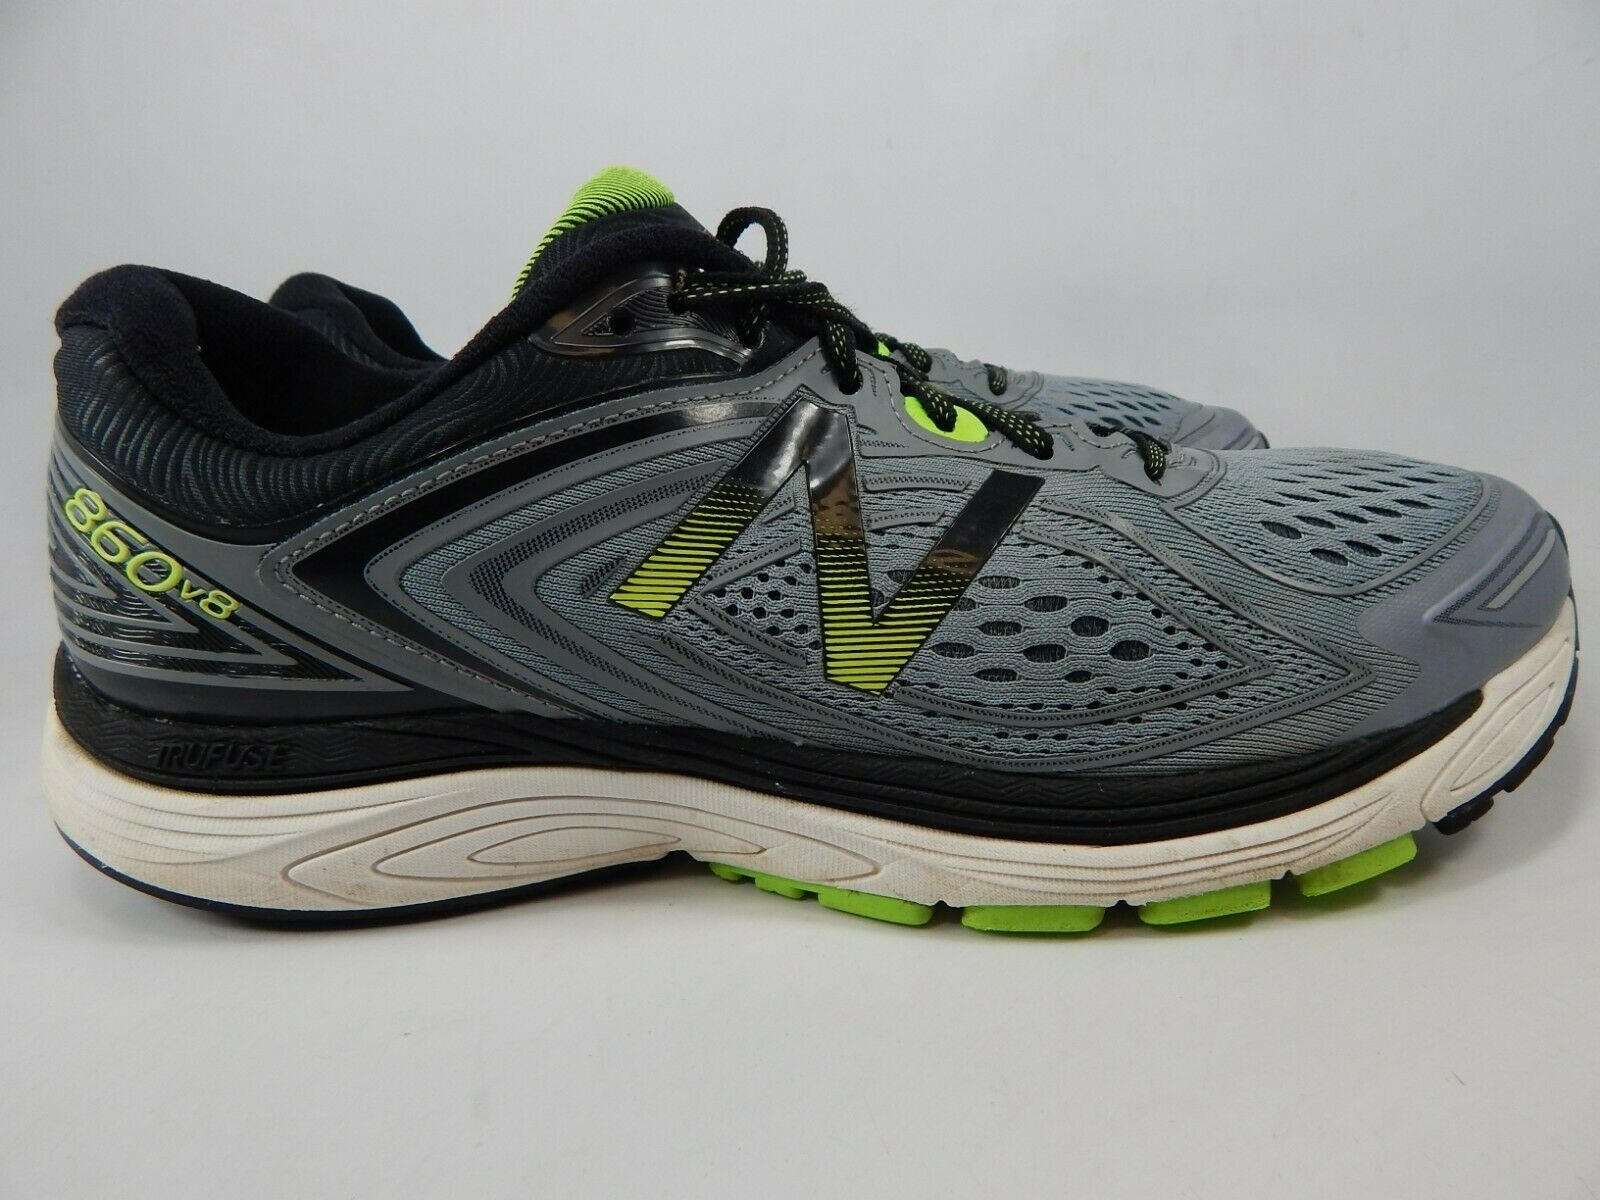 f7922a79d0ec3 New Balance 860 v8 Size US 11 M (D) EU 45 Men's Running Shoes Grey M860GG8  - $61.04